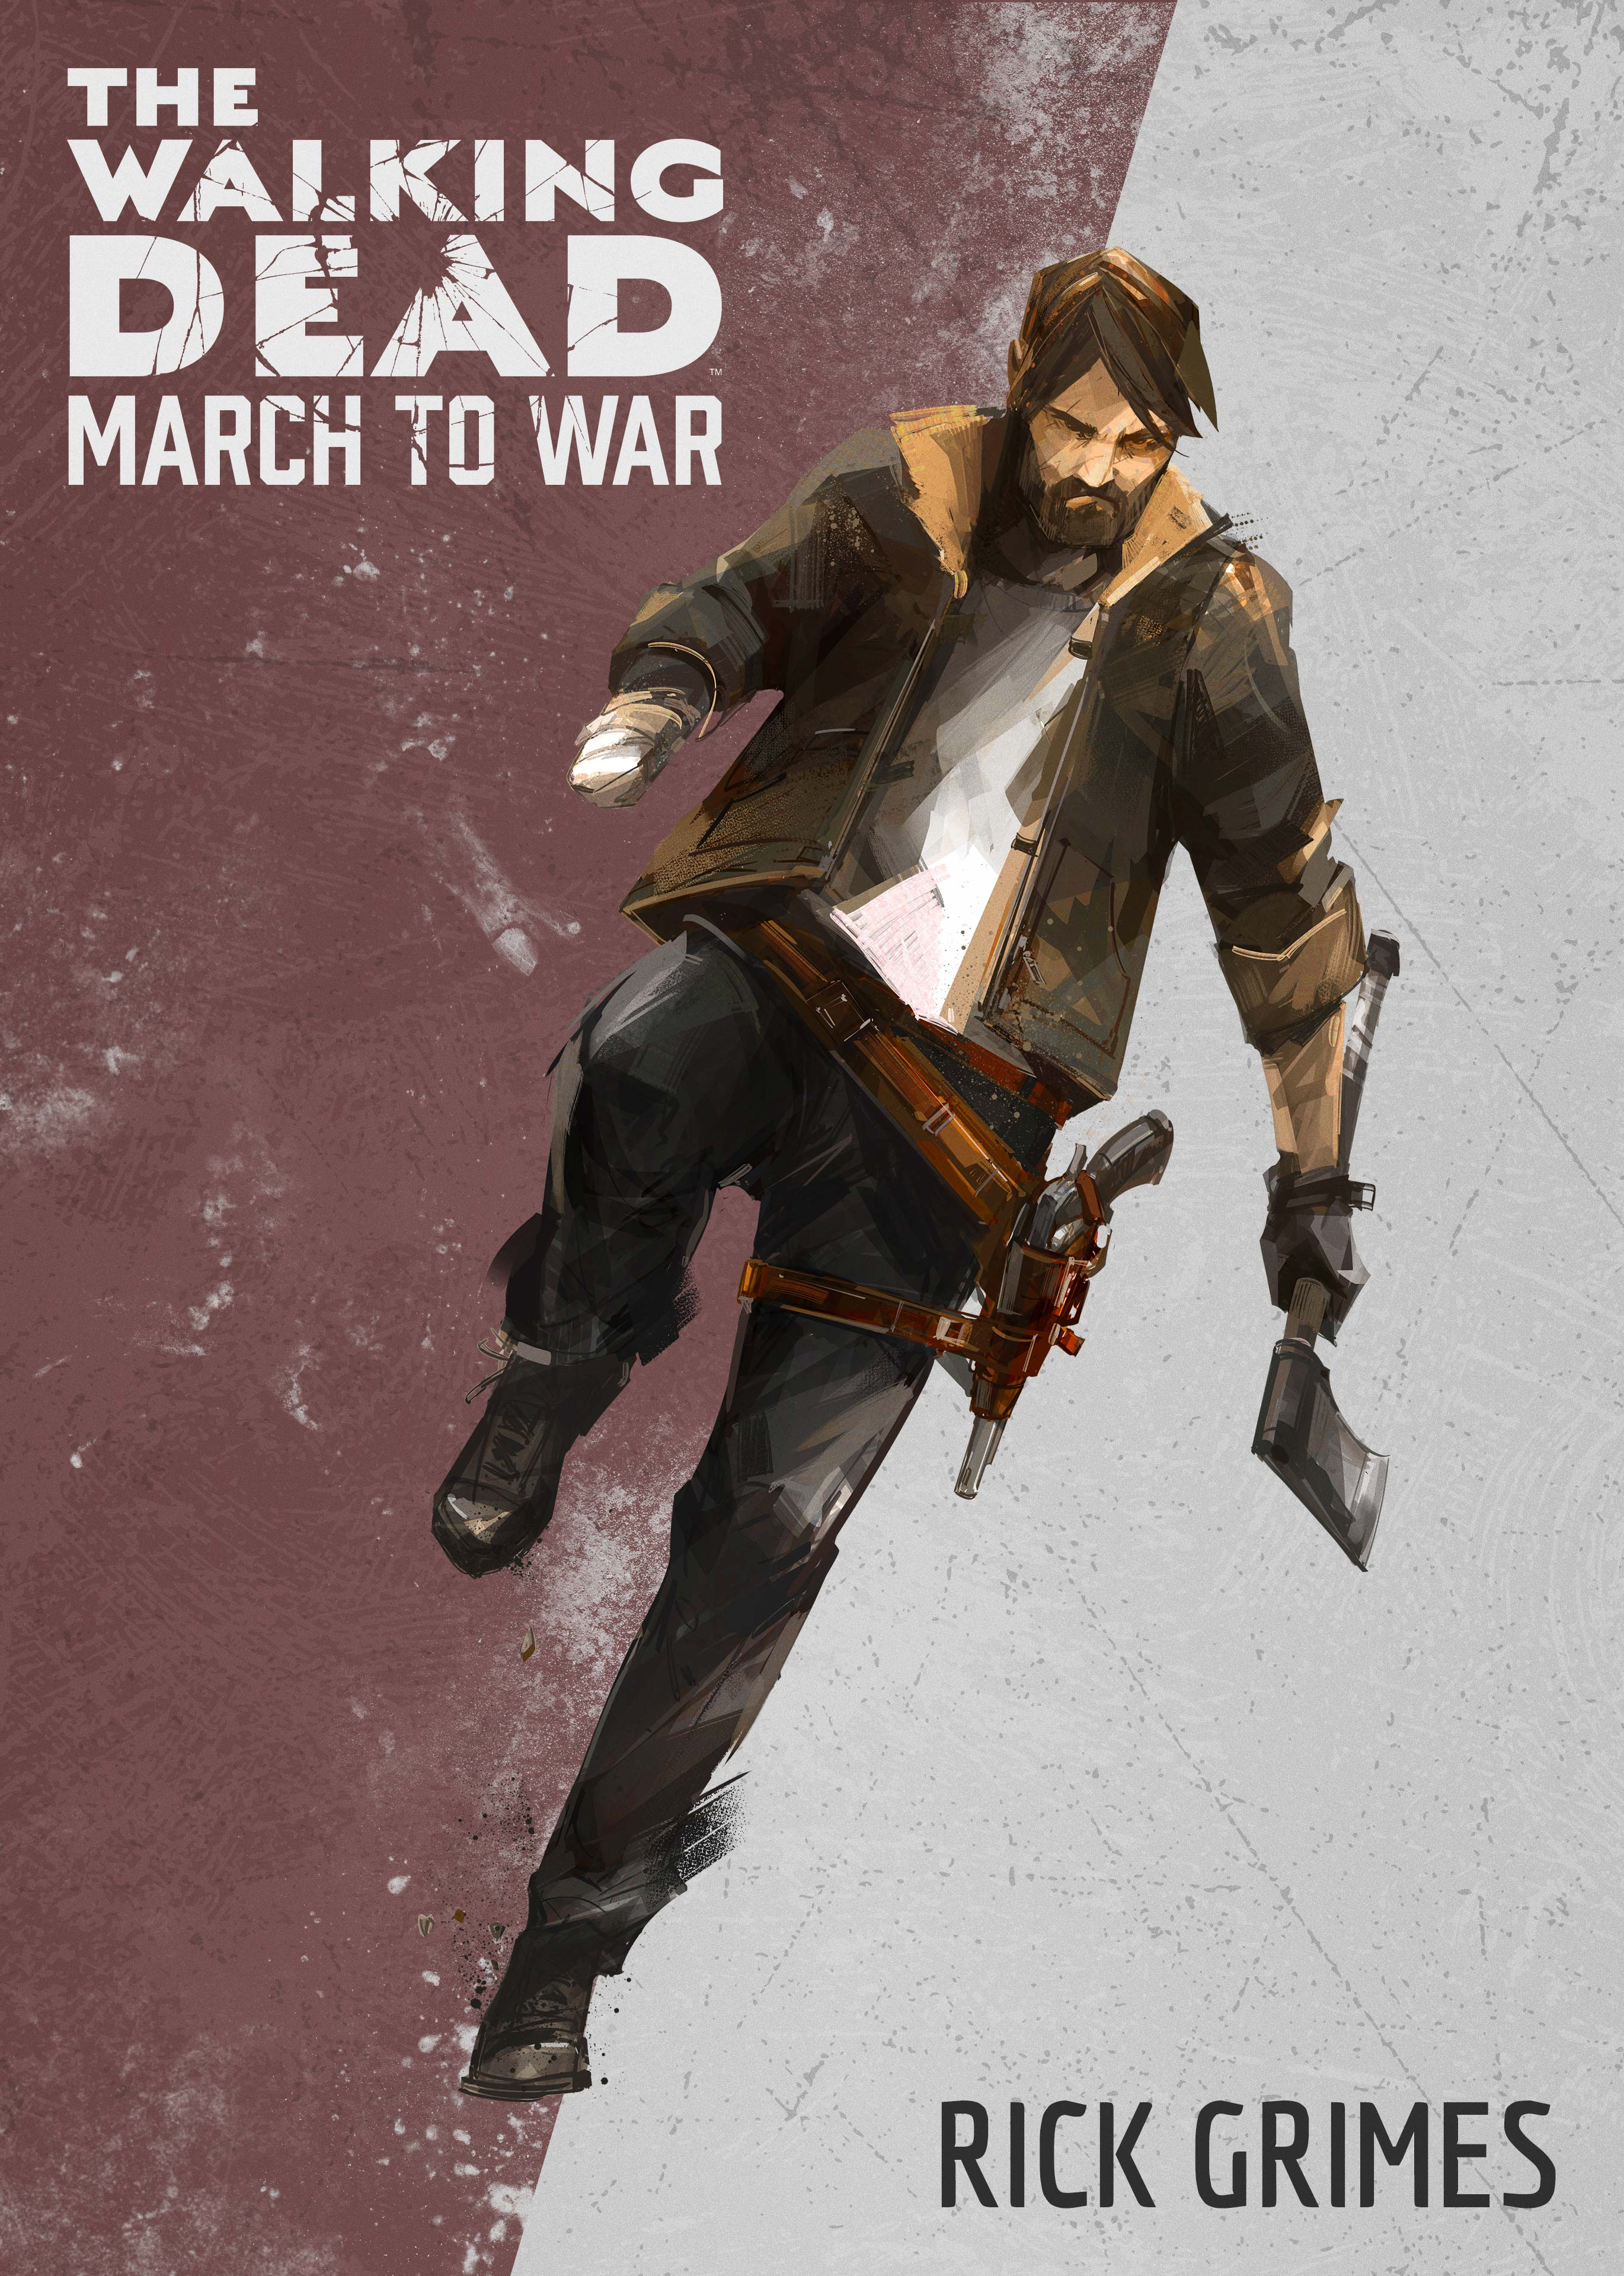 Rick 2 - The Walking Dead: March To War Game Coming Later This Year